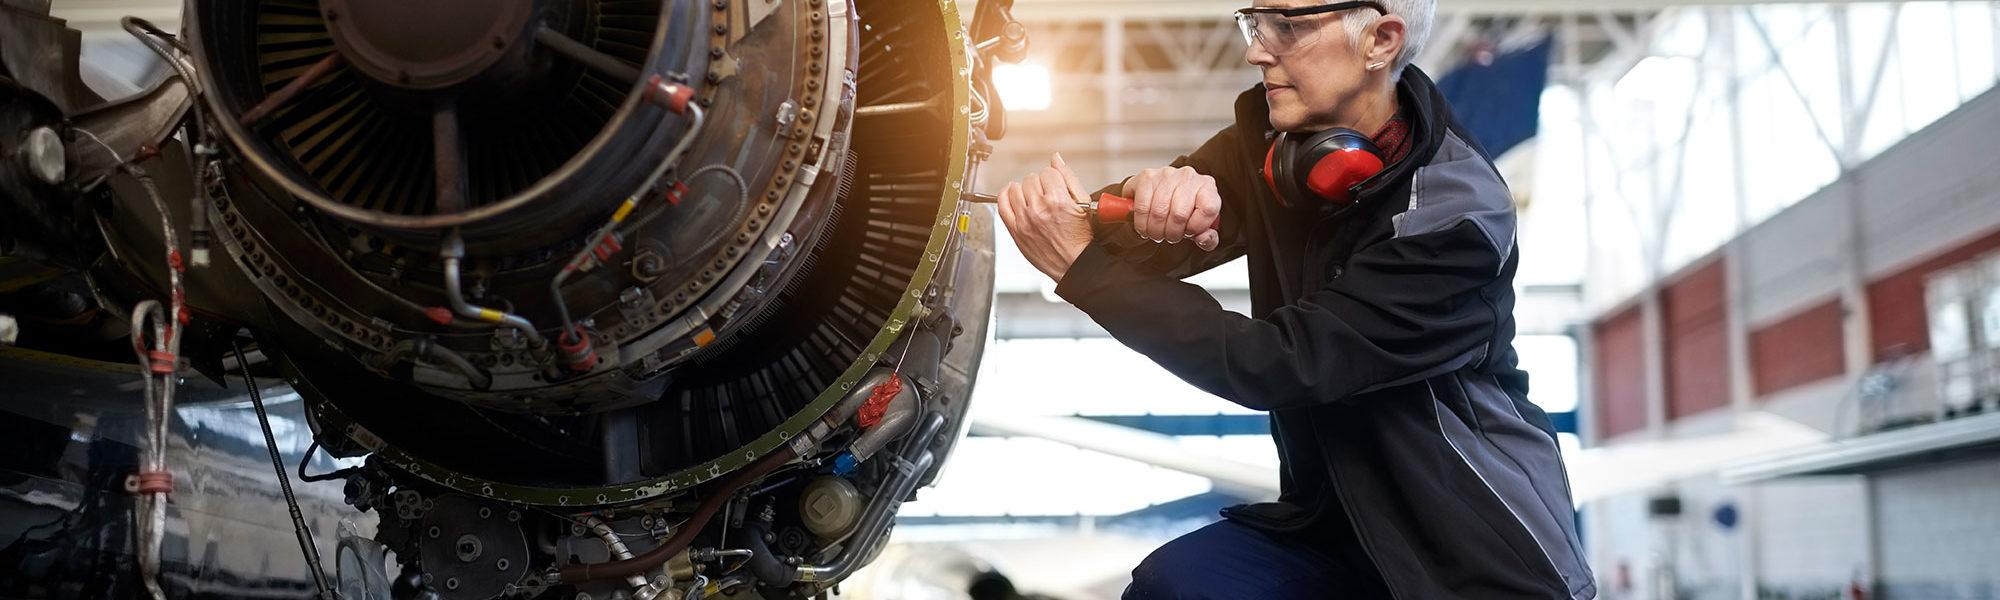 Aircraft being worked on by woman in industrial gear